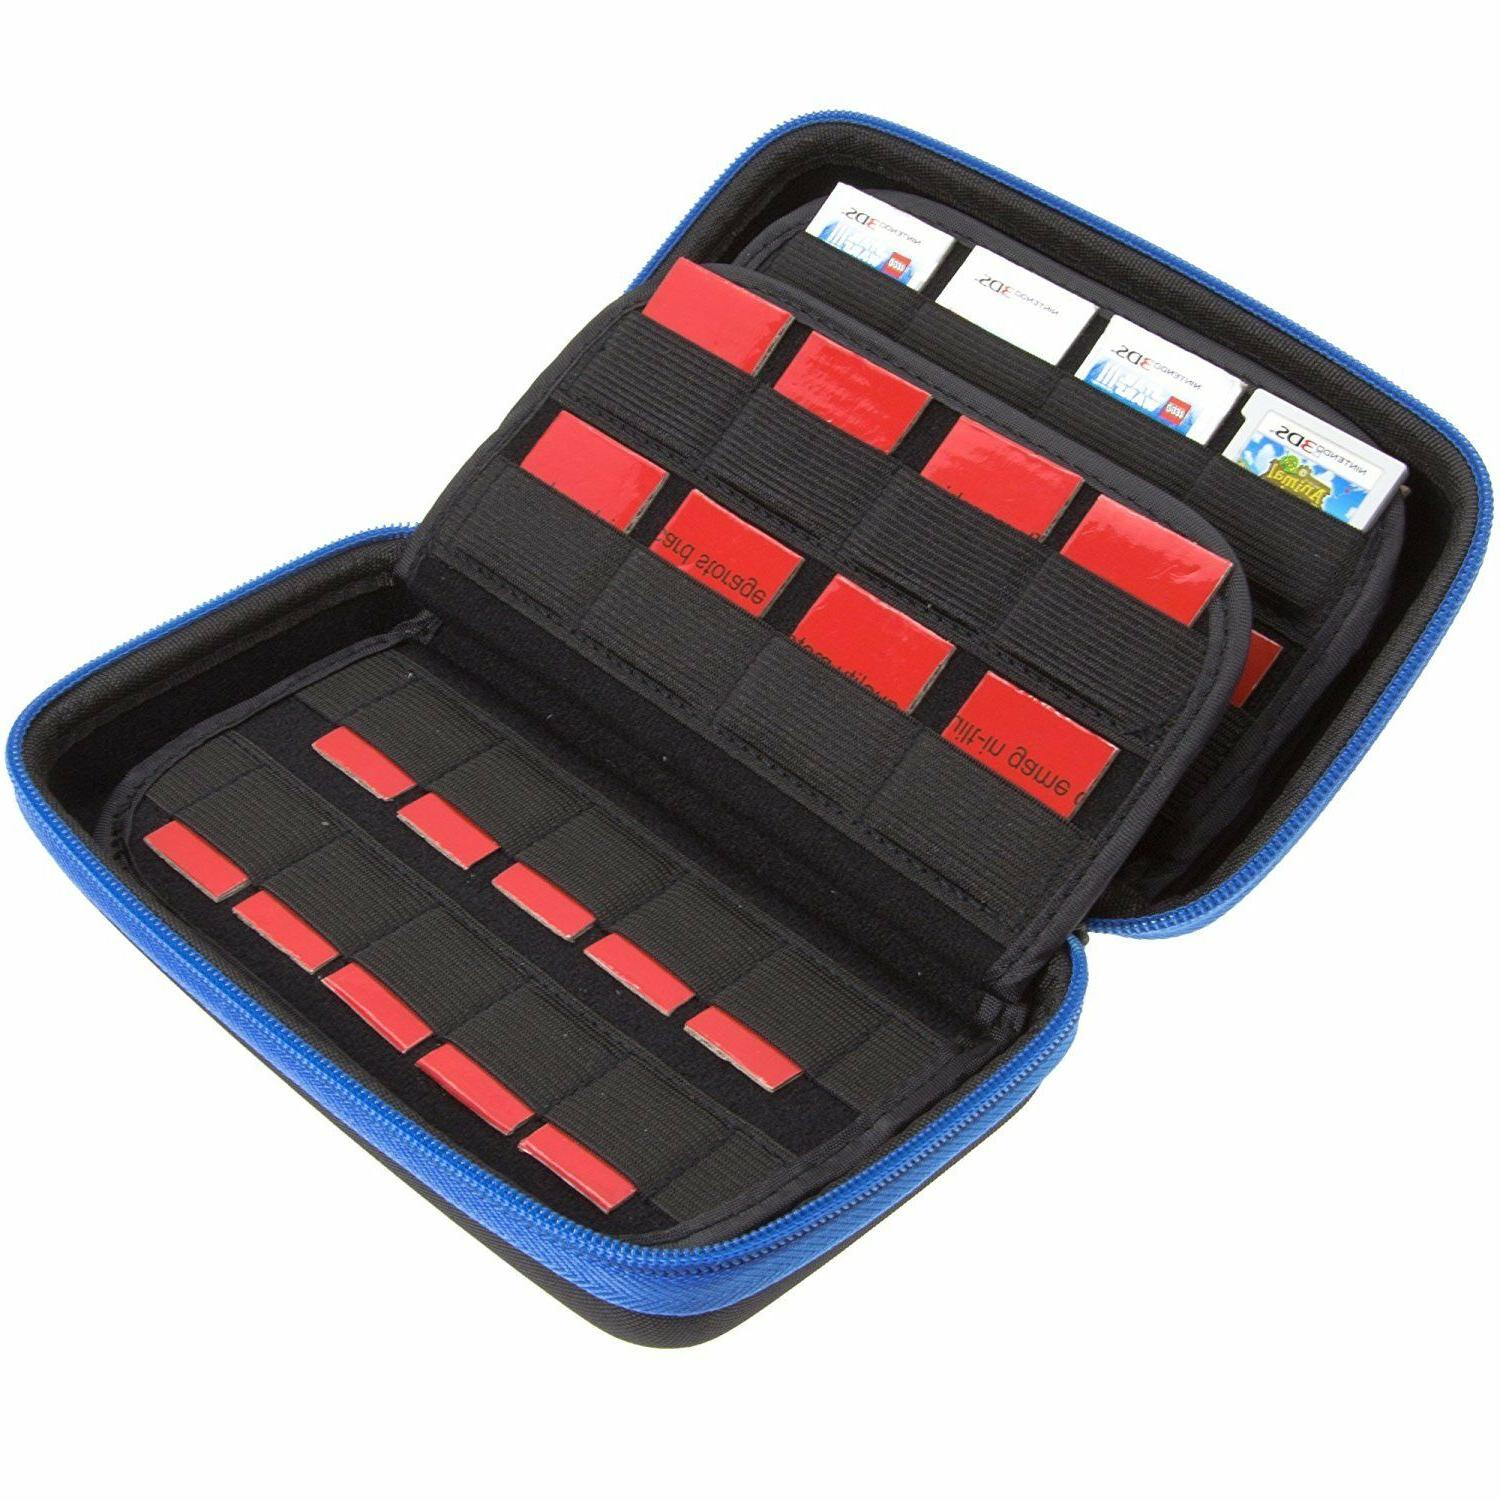 68 Case for Nintendo Switch/PS Vita/3DS/2DS/DS Cards